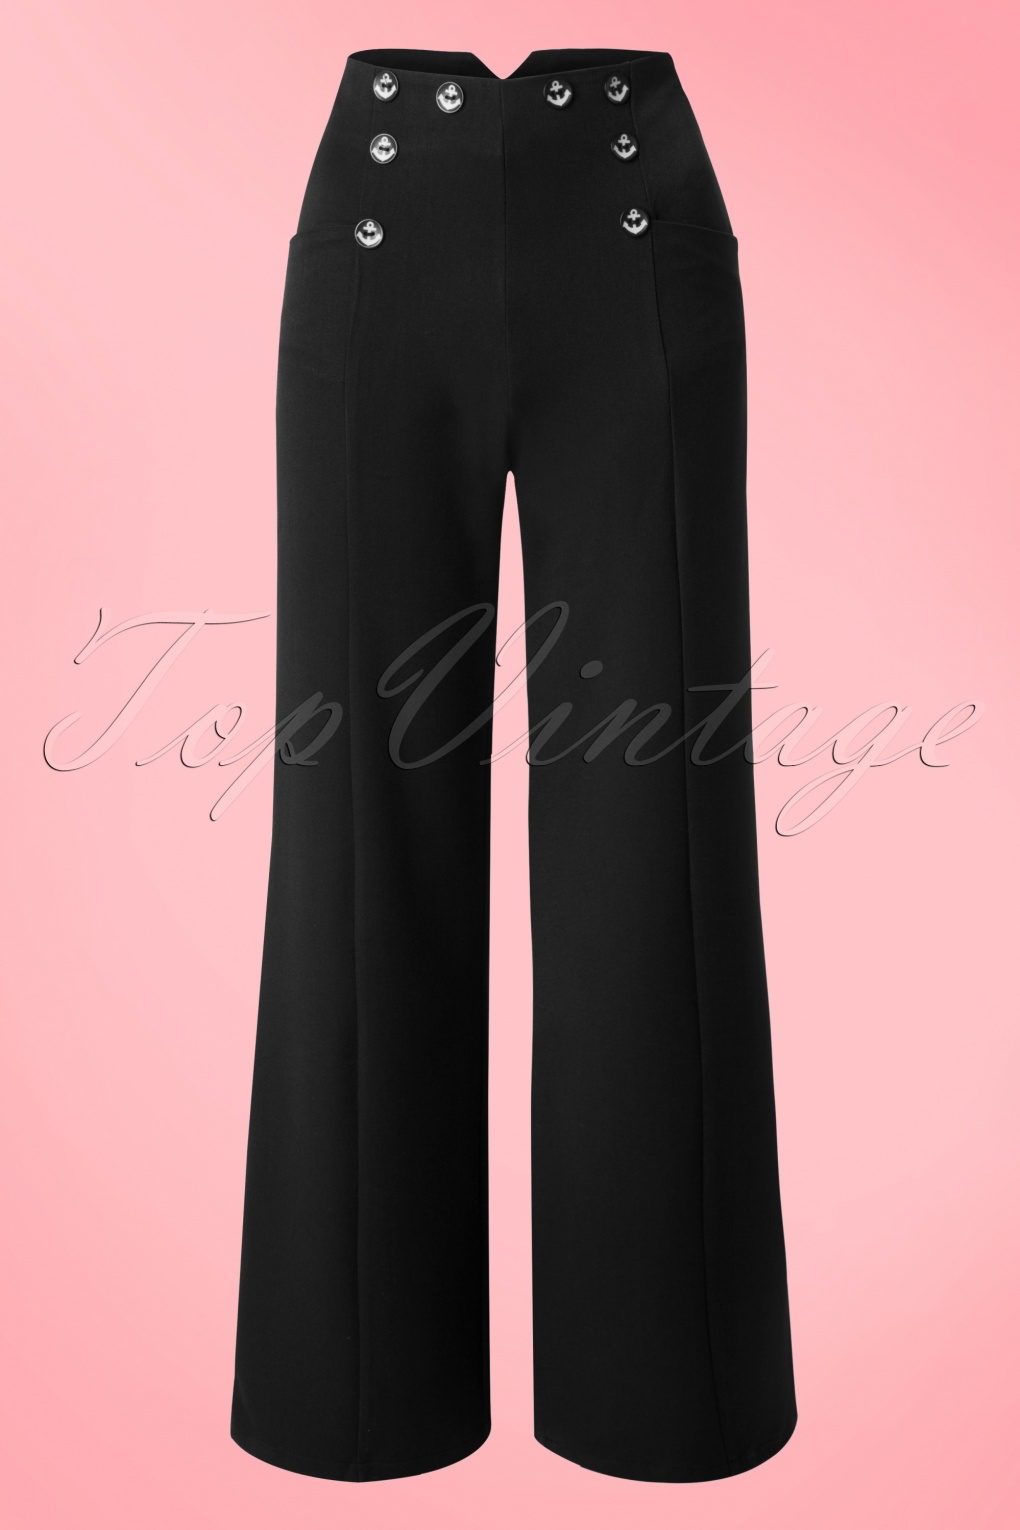 1940s Style Pants & Overalls- Wide Leg, High Waist 40s Stay Awhile Trousers in Black £35.06 AT vintagedancer.com